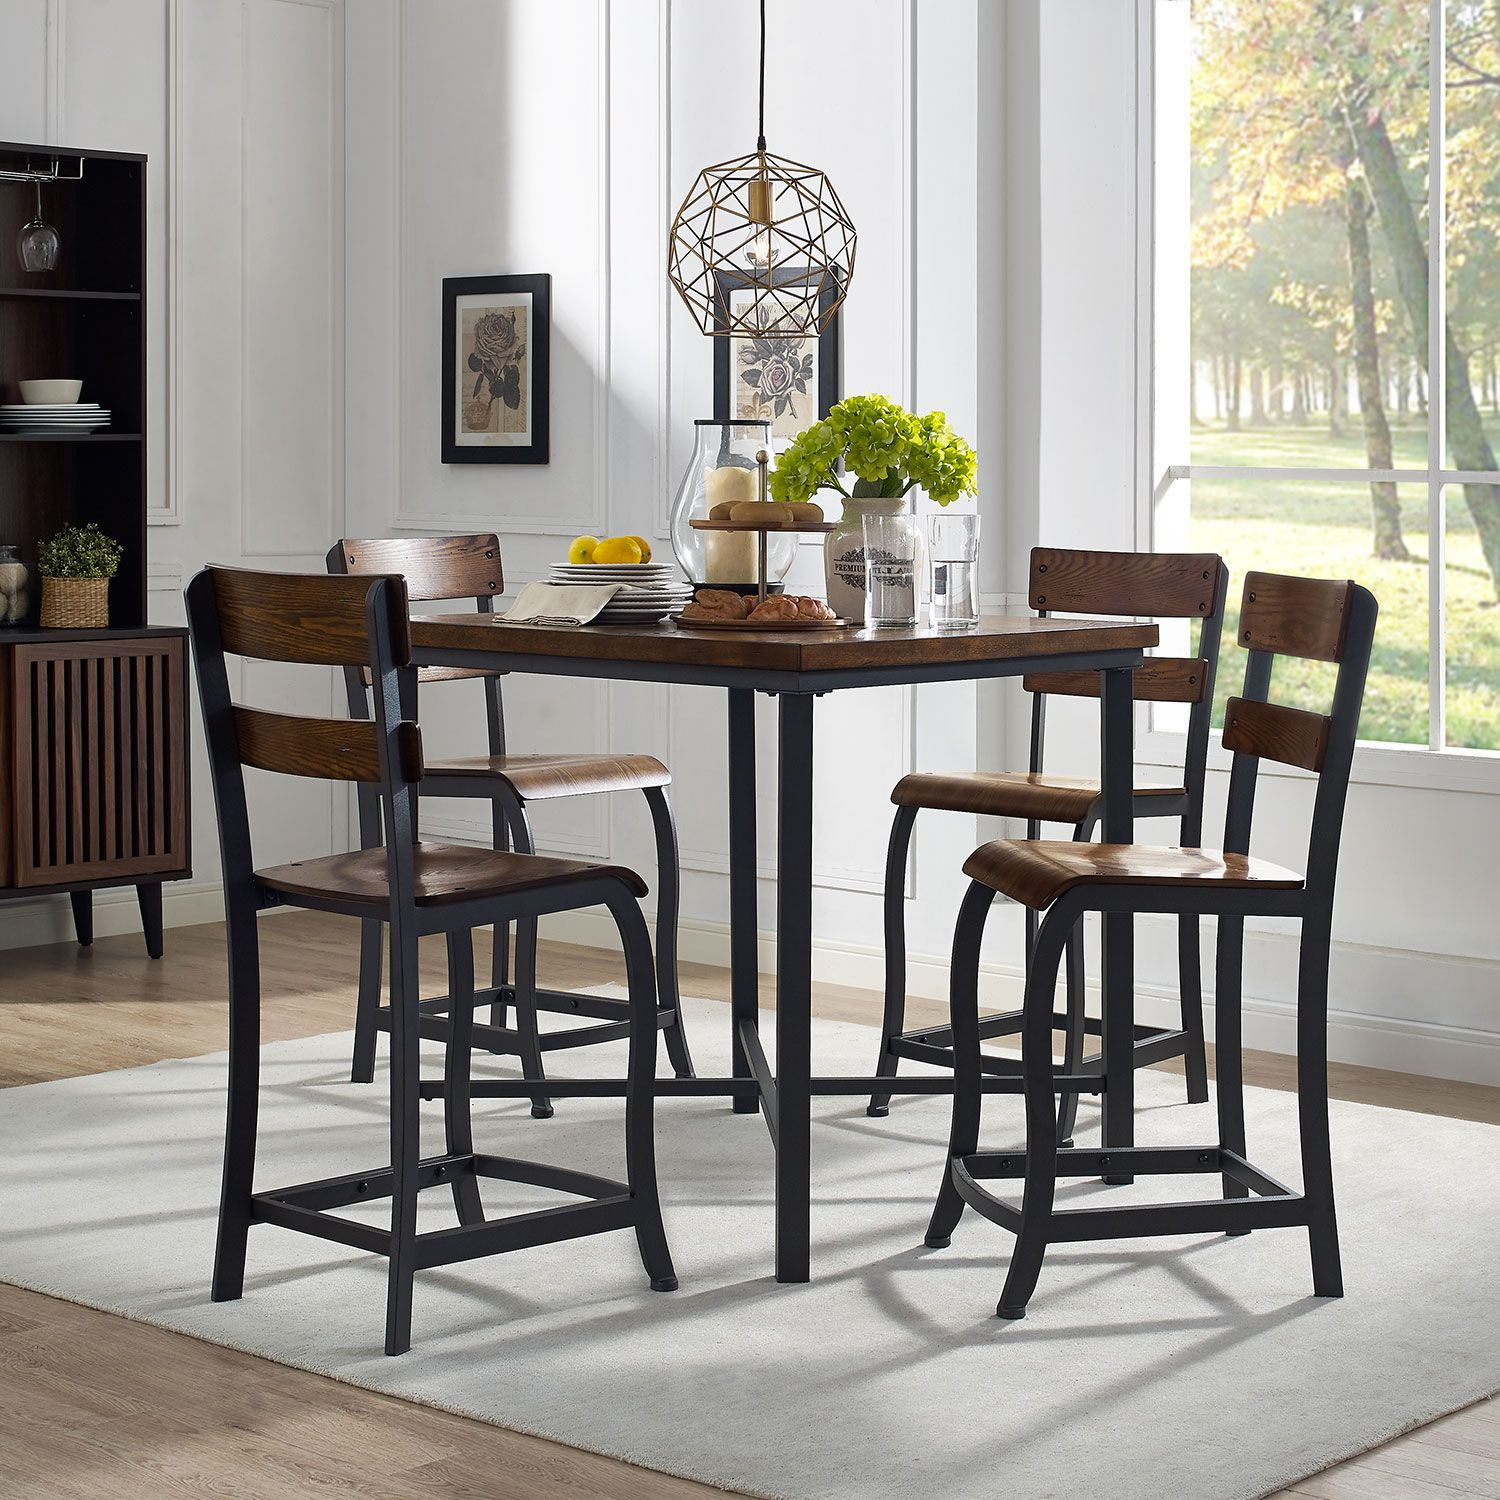 Maddox 5-Piece Counter-Height Dining Set